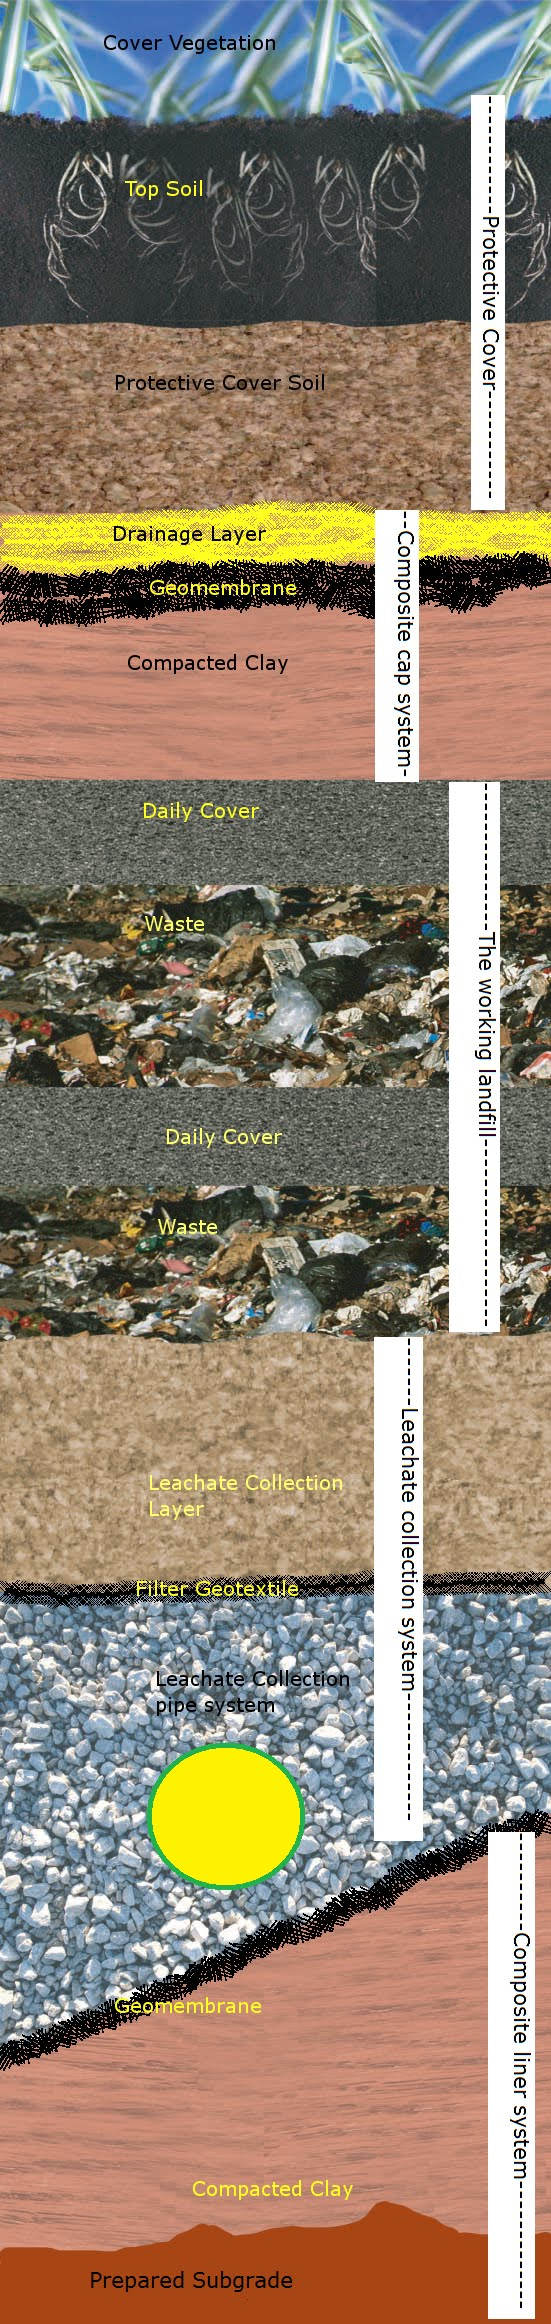 Anatomy Of A Conventional Landfill A Better Way To Build A Landfill